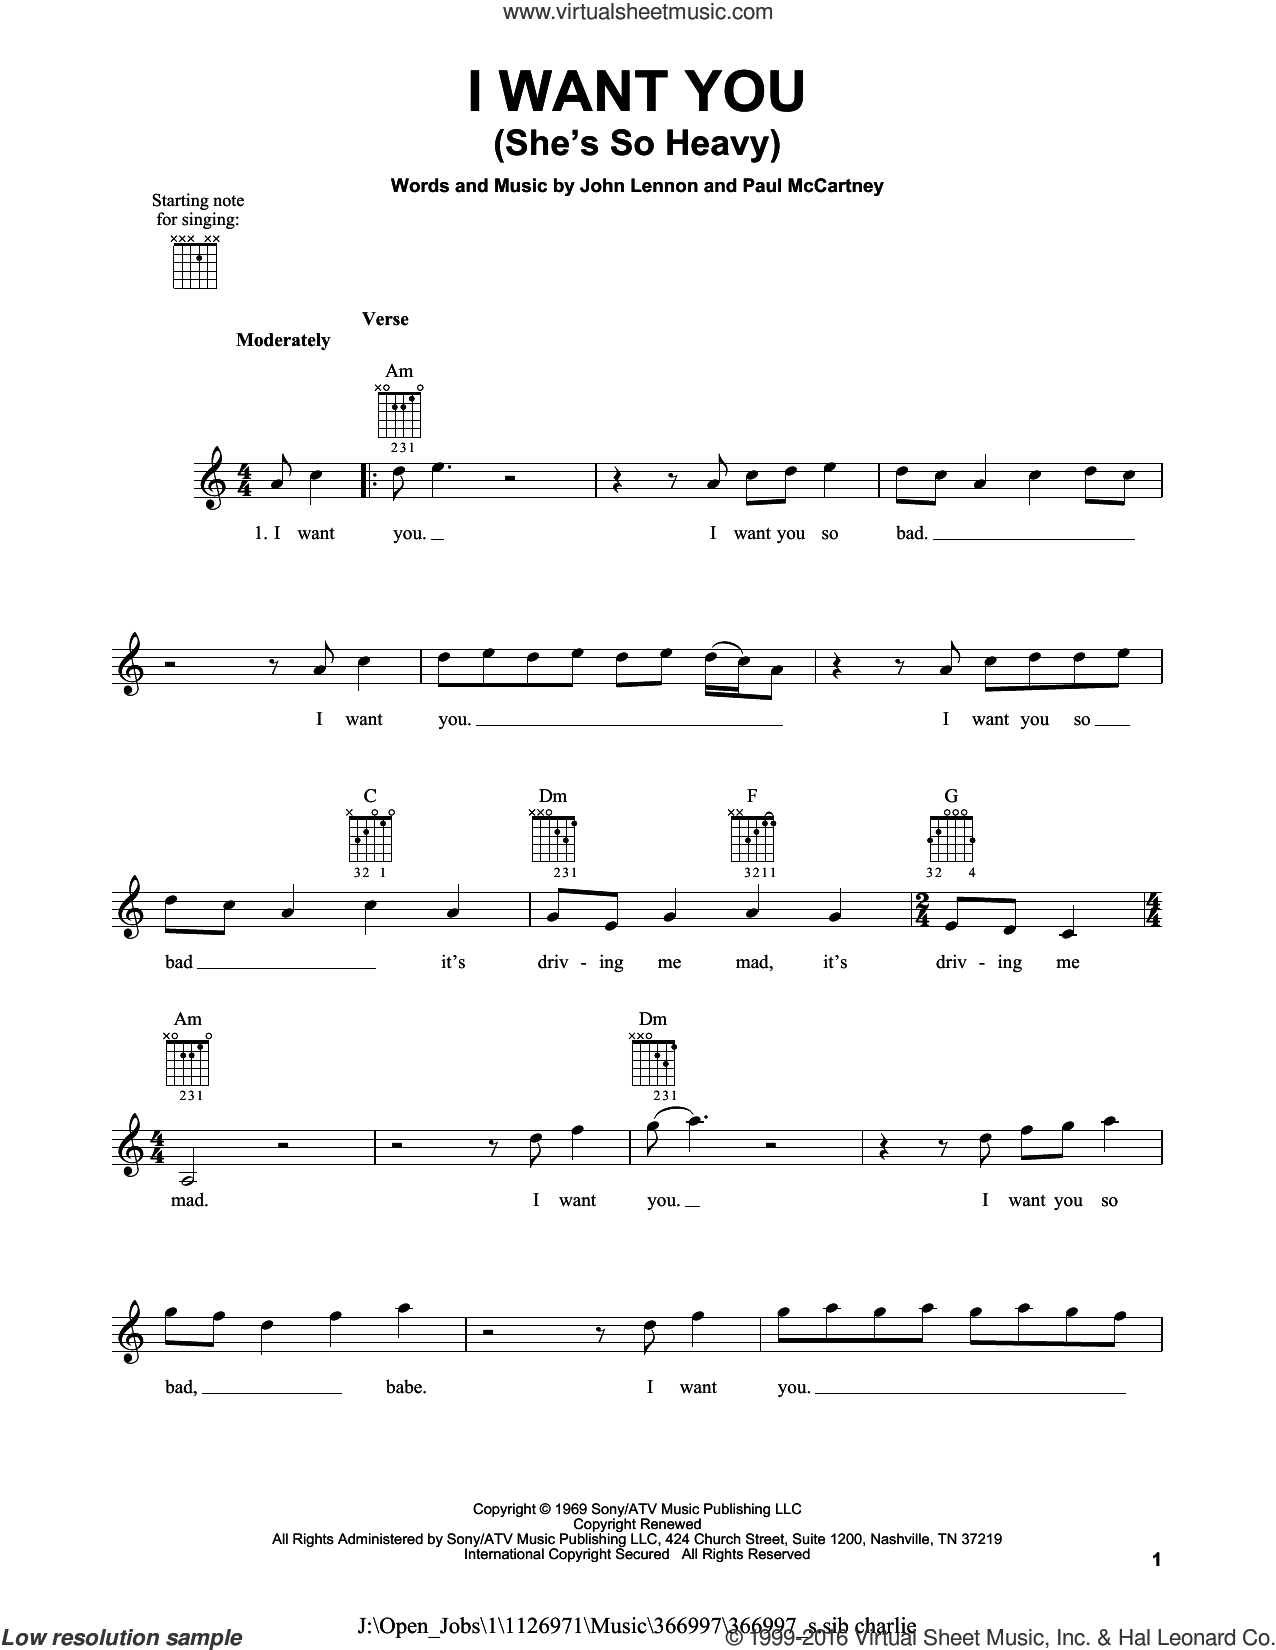 I Want You (She's So Heavy) sheet music for guitar solo (chords) by Paul McCartney, The Beatles and John Lennon. Score Image Preview.